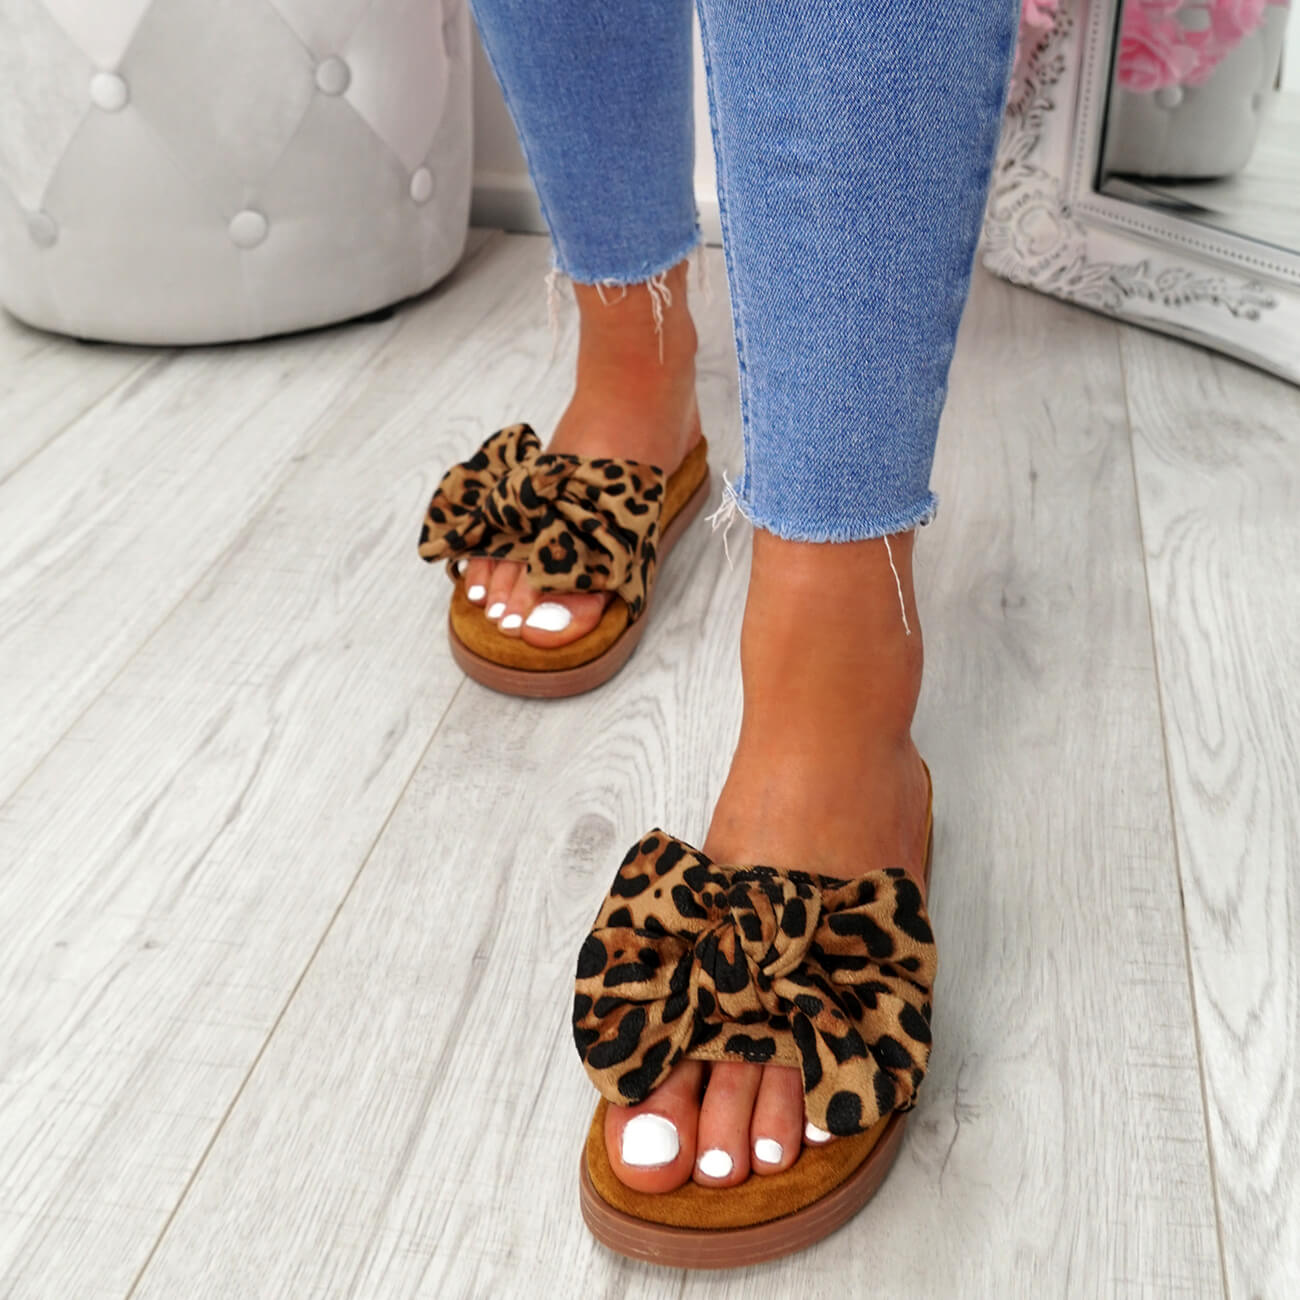 WOMENS-LADIES-FLAT-SANDALS-FRONT-BOW-COMFY-SUMMER-CASUAL-HOLIDAY-SHOES-SIZE-UK thumbnail 22